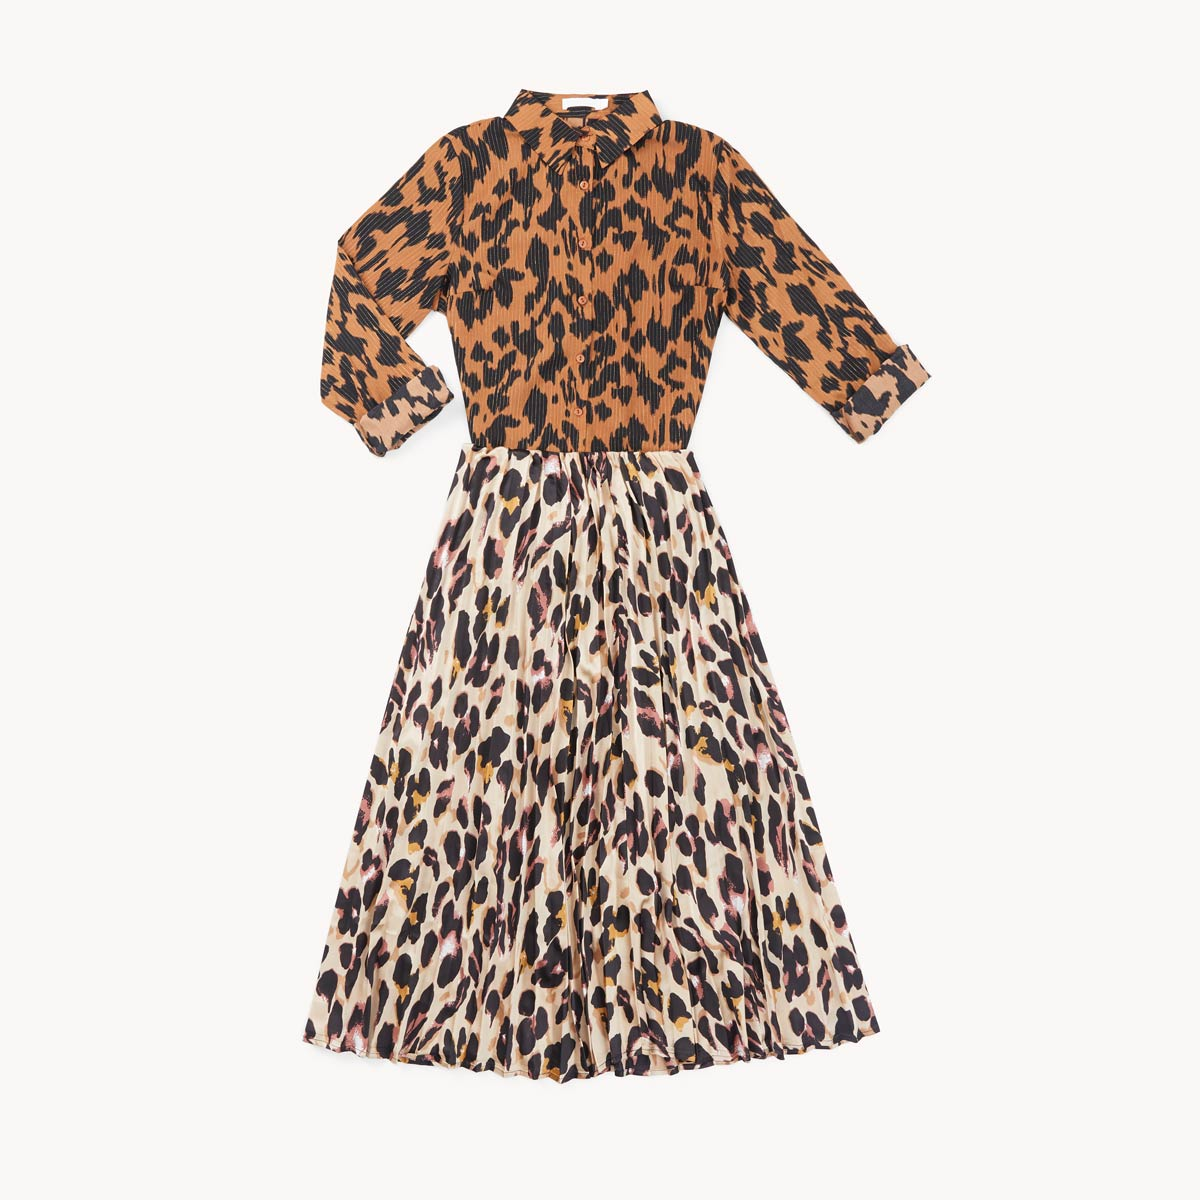 pleated animal print skirt mix and match spring summer trend 2020